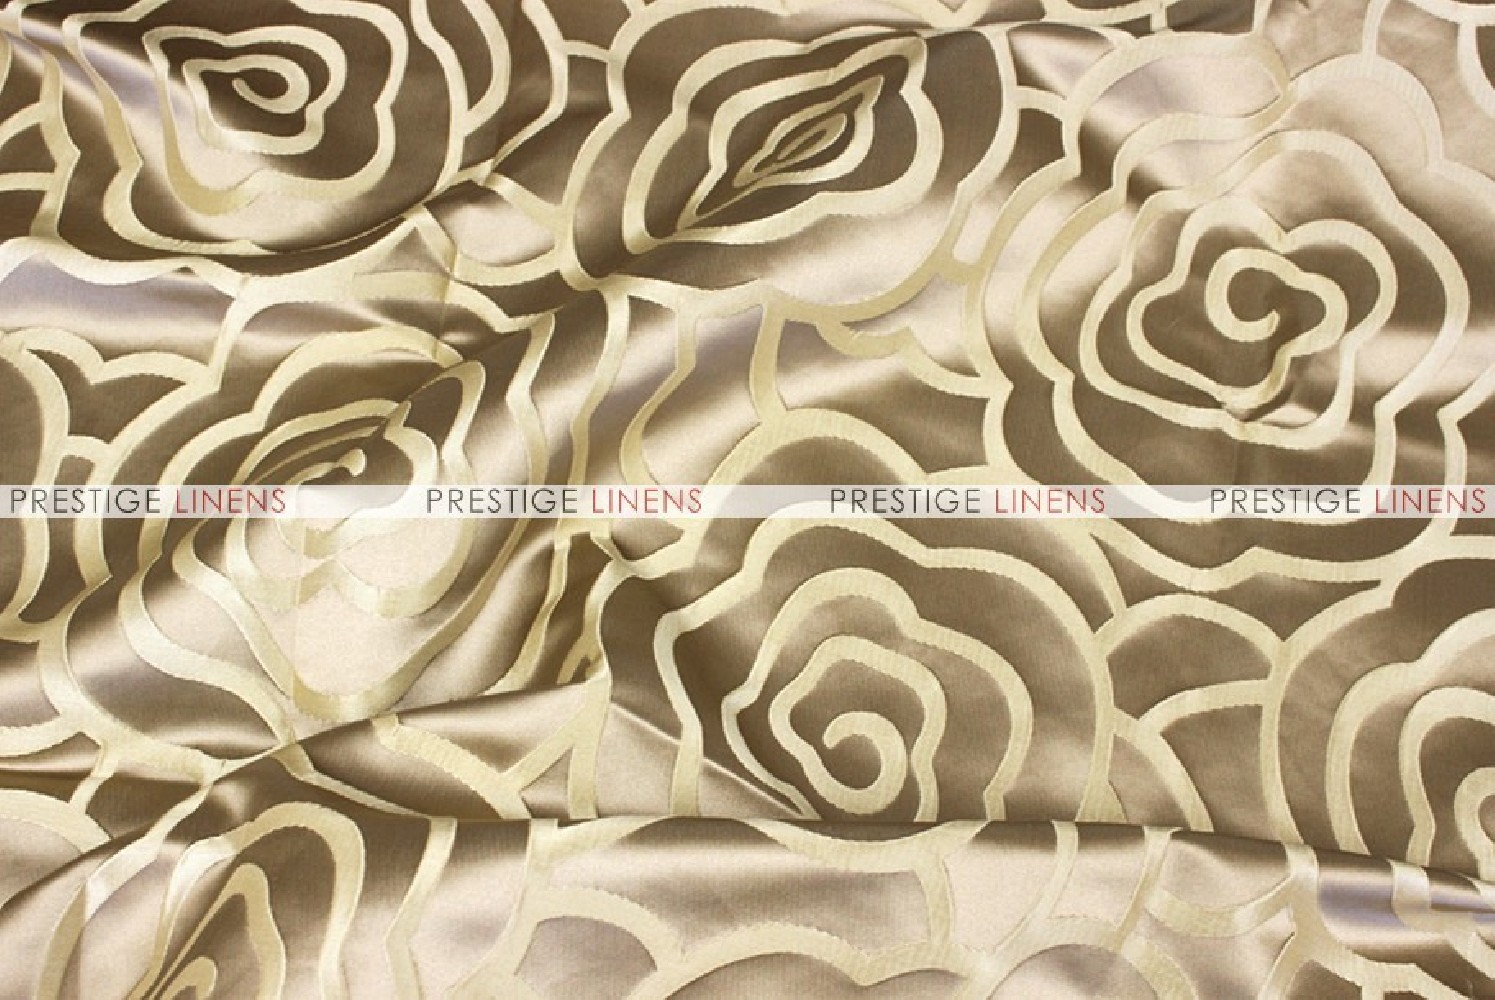 Rose jacquard fabric by the yard gold prestige linens for Jacquard fabric